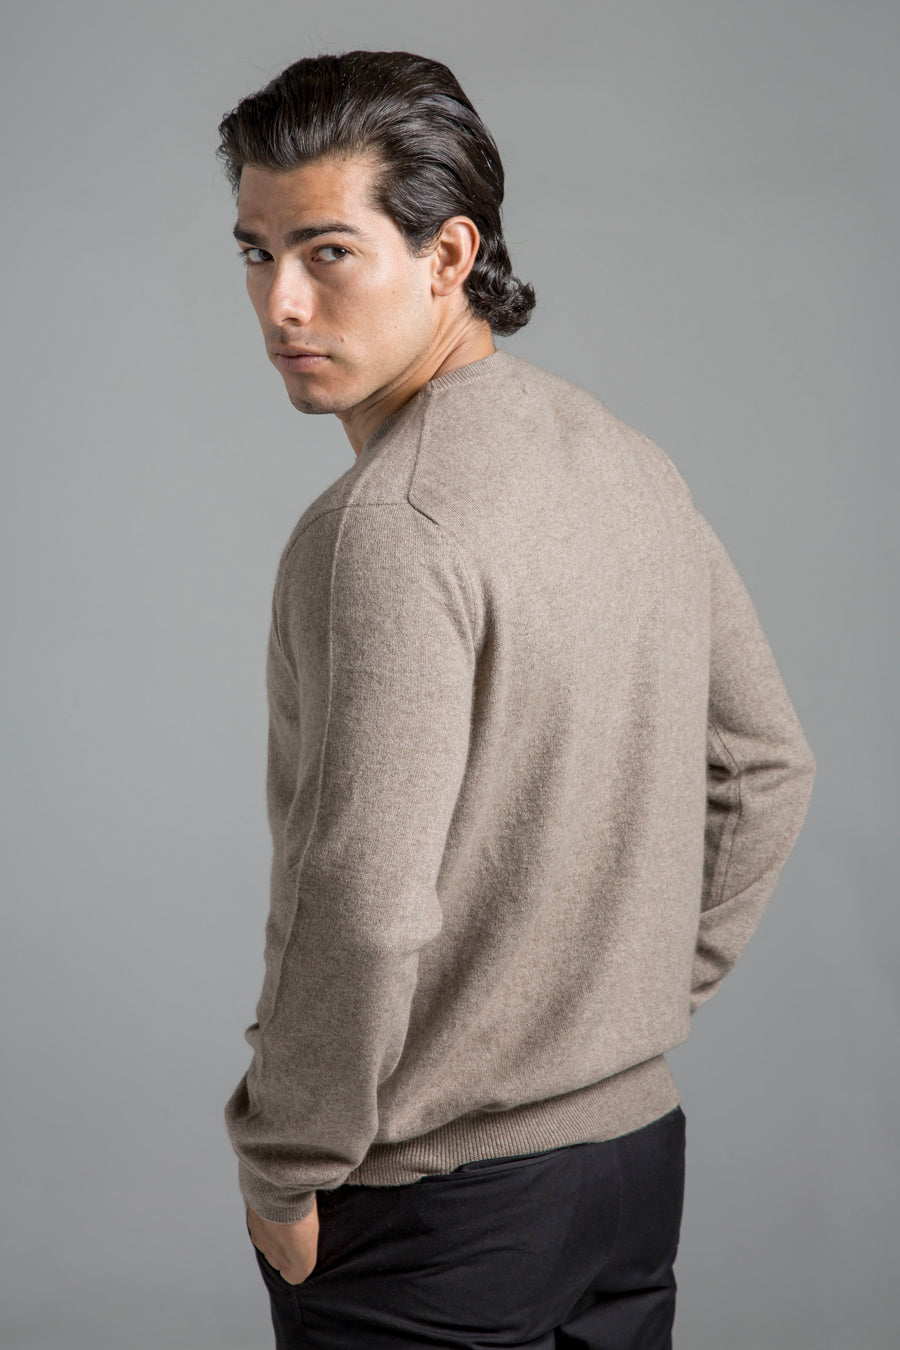 pine cashmere mens classic 100% pure organic cashmere crewneck sweater in brown